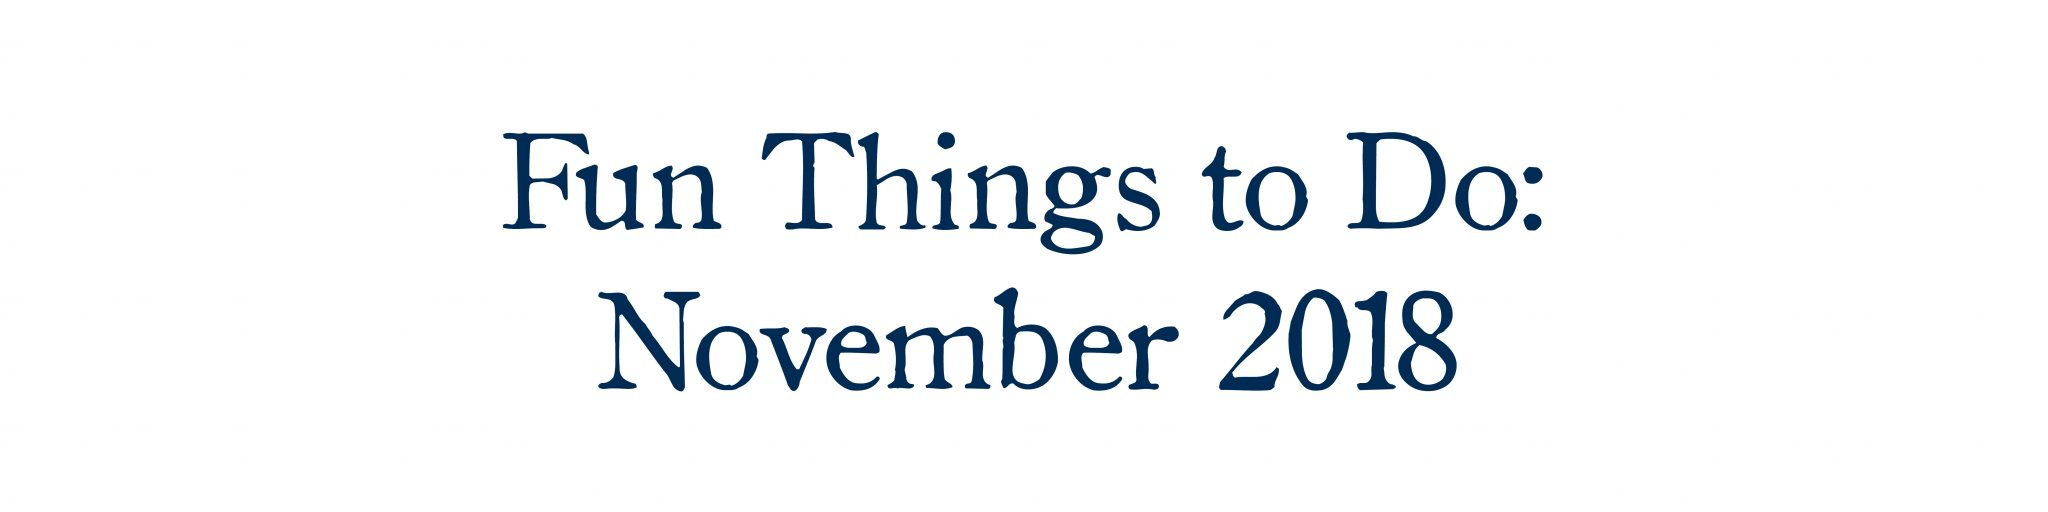 Fun Things to Do: November 2018